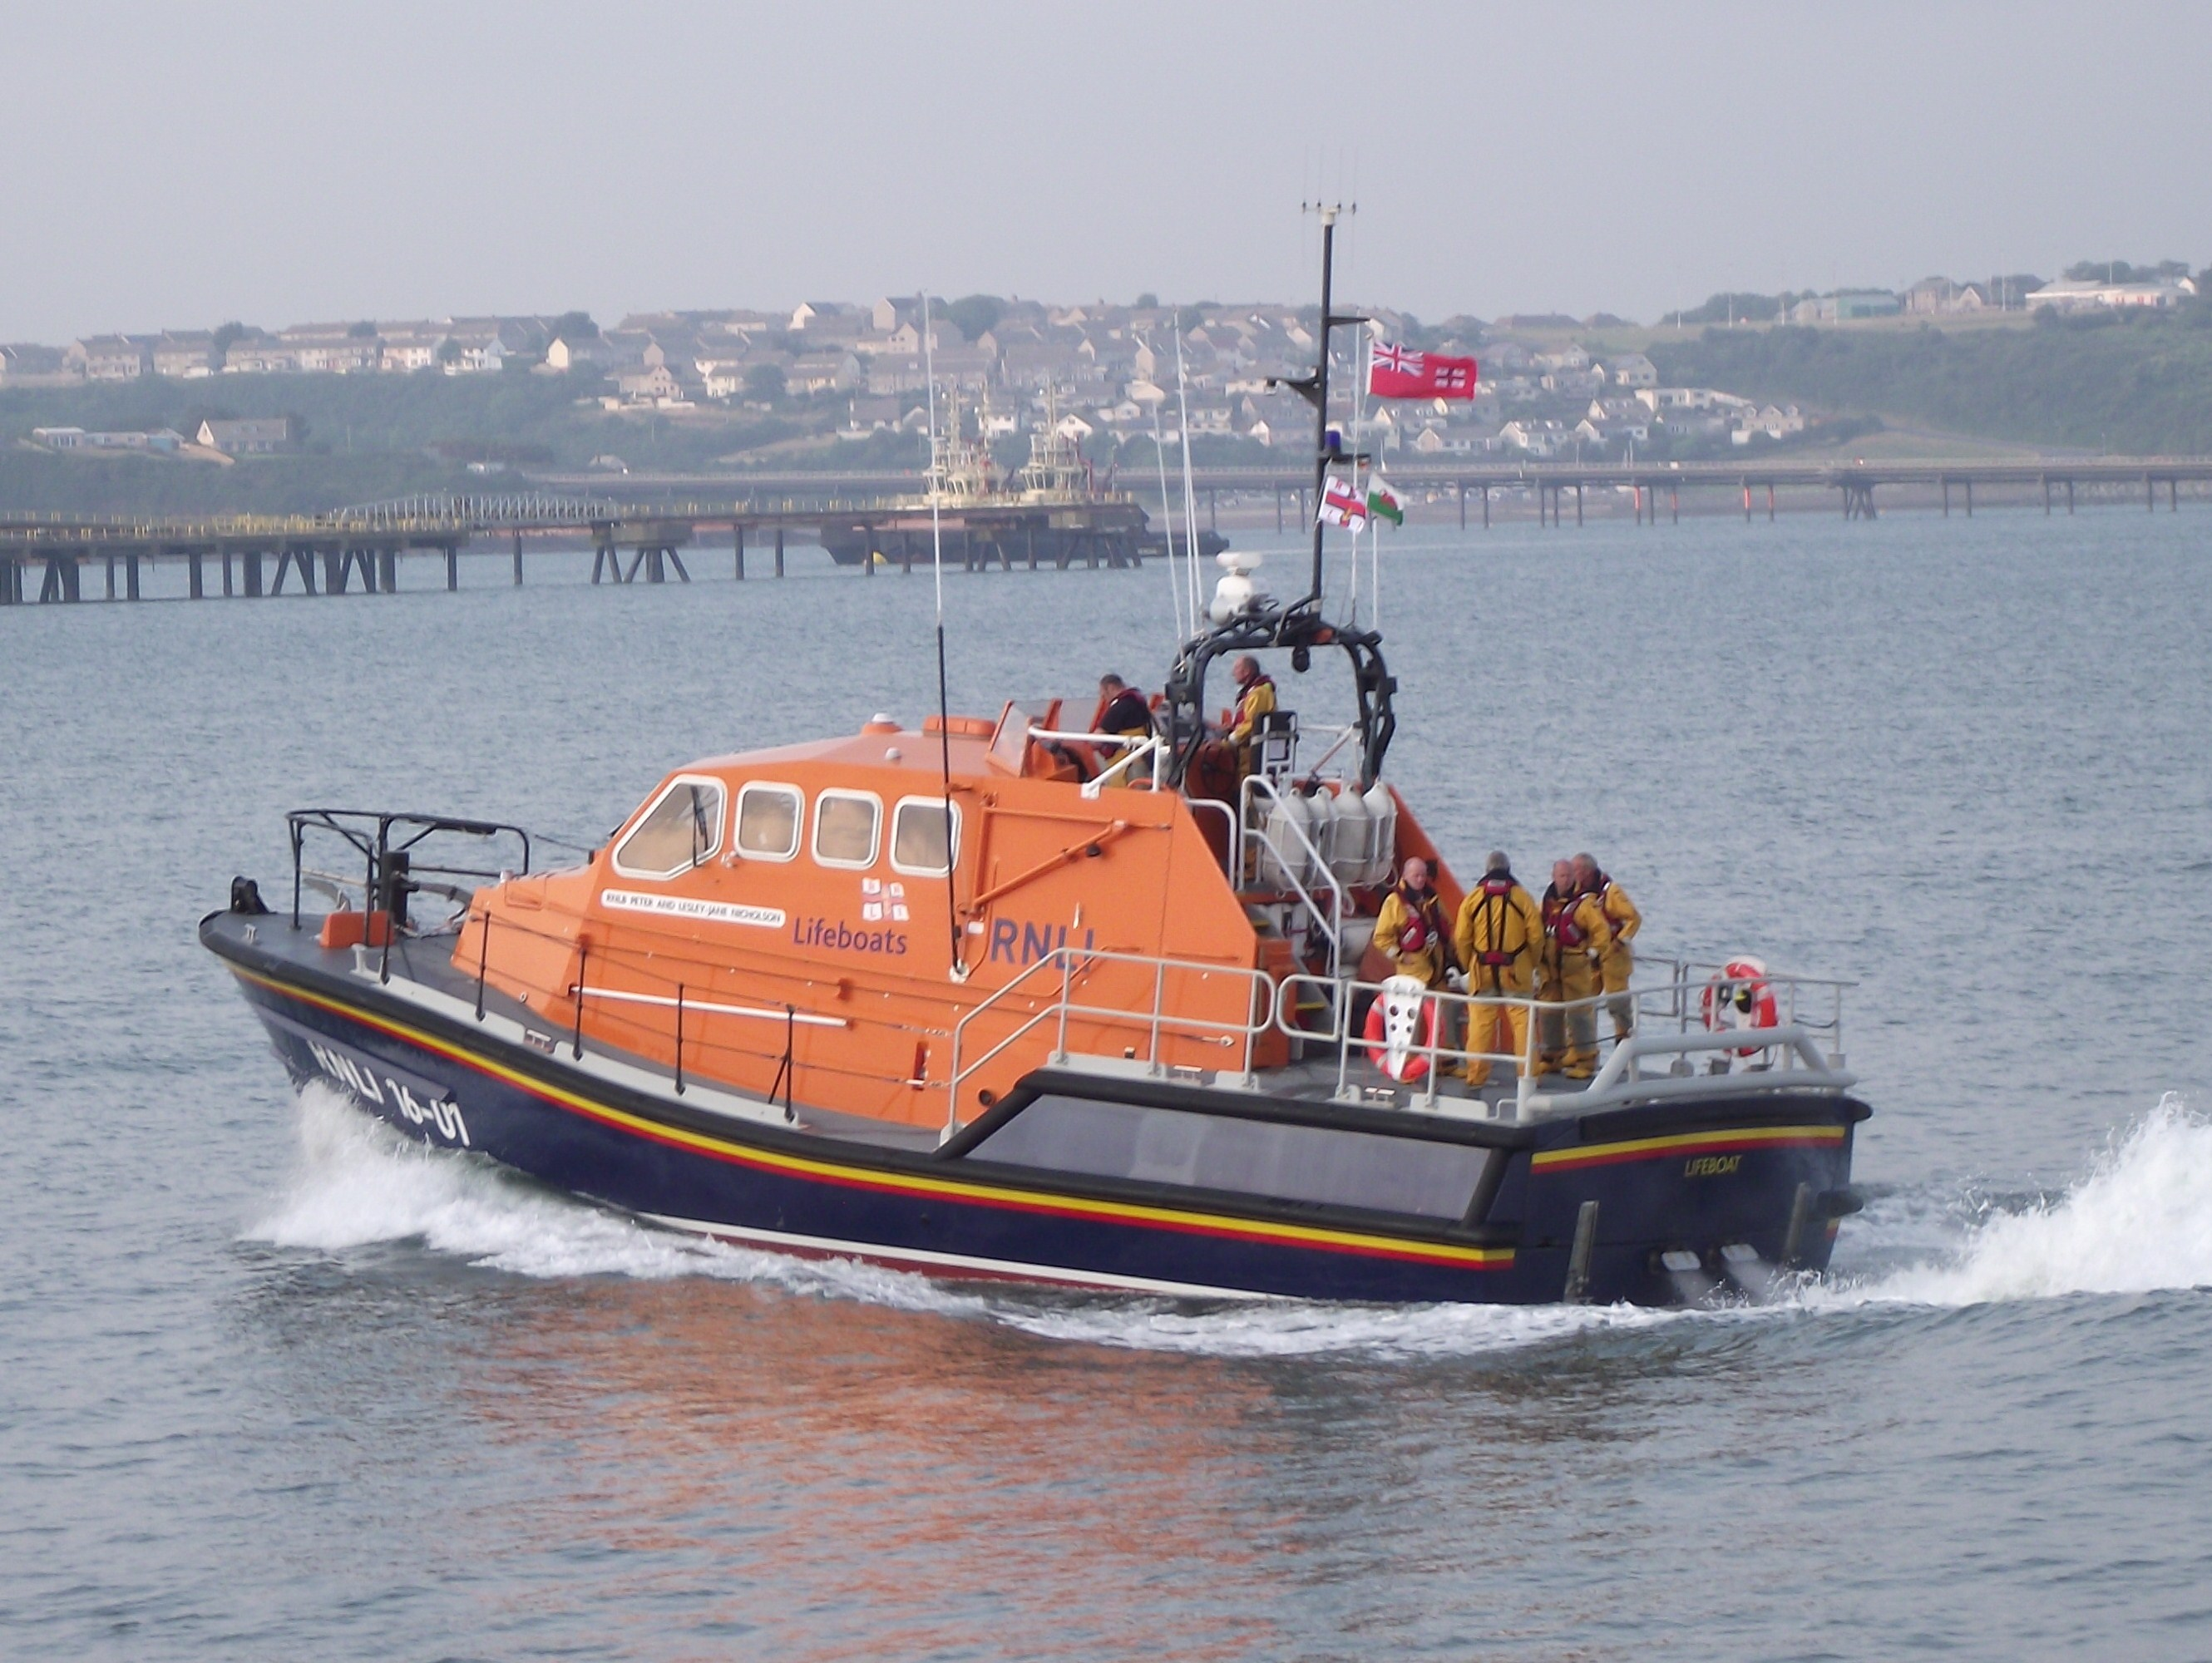 RNLI Angle relief lifeboat Peter and Lesley-Jane Nicholson